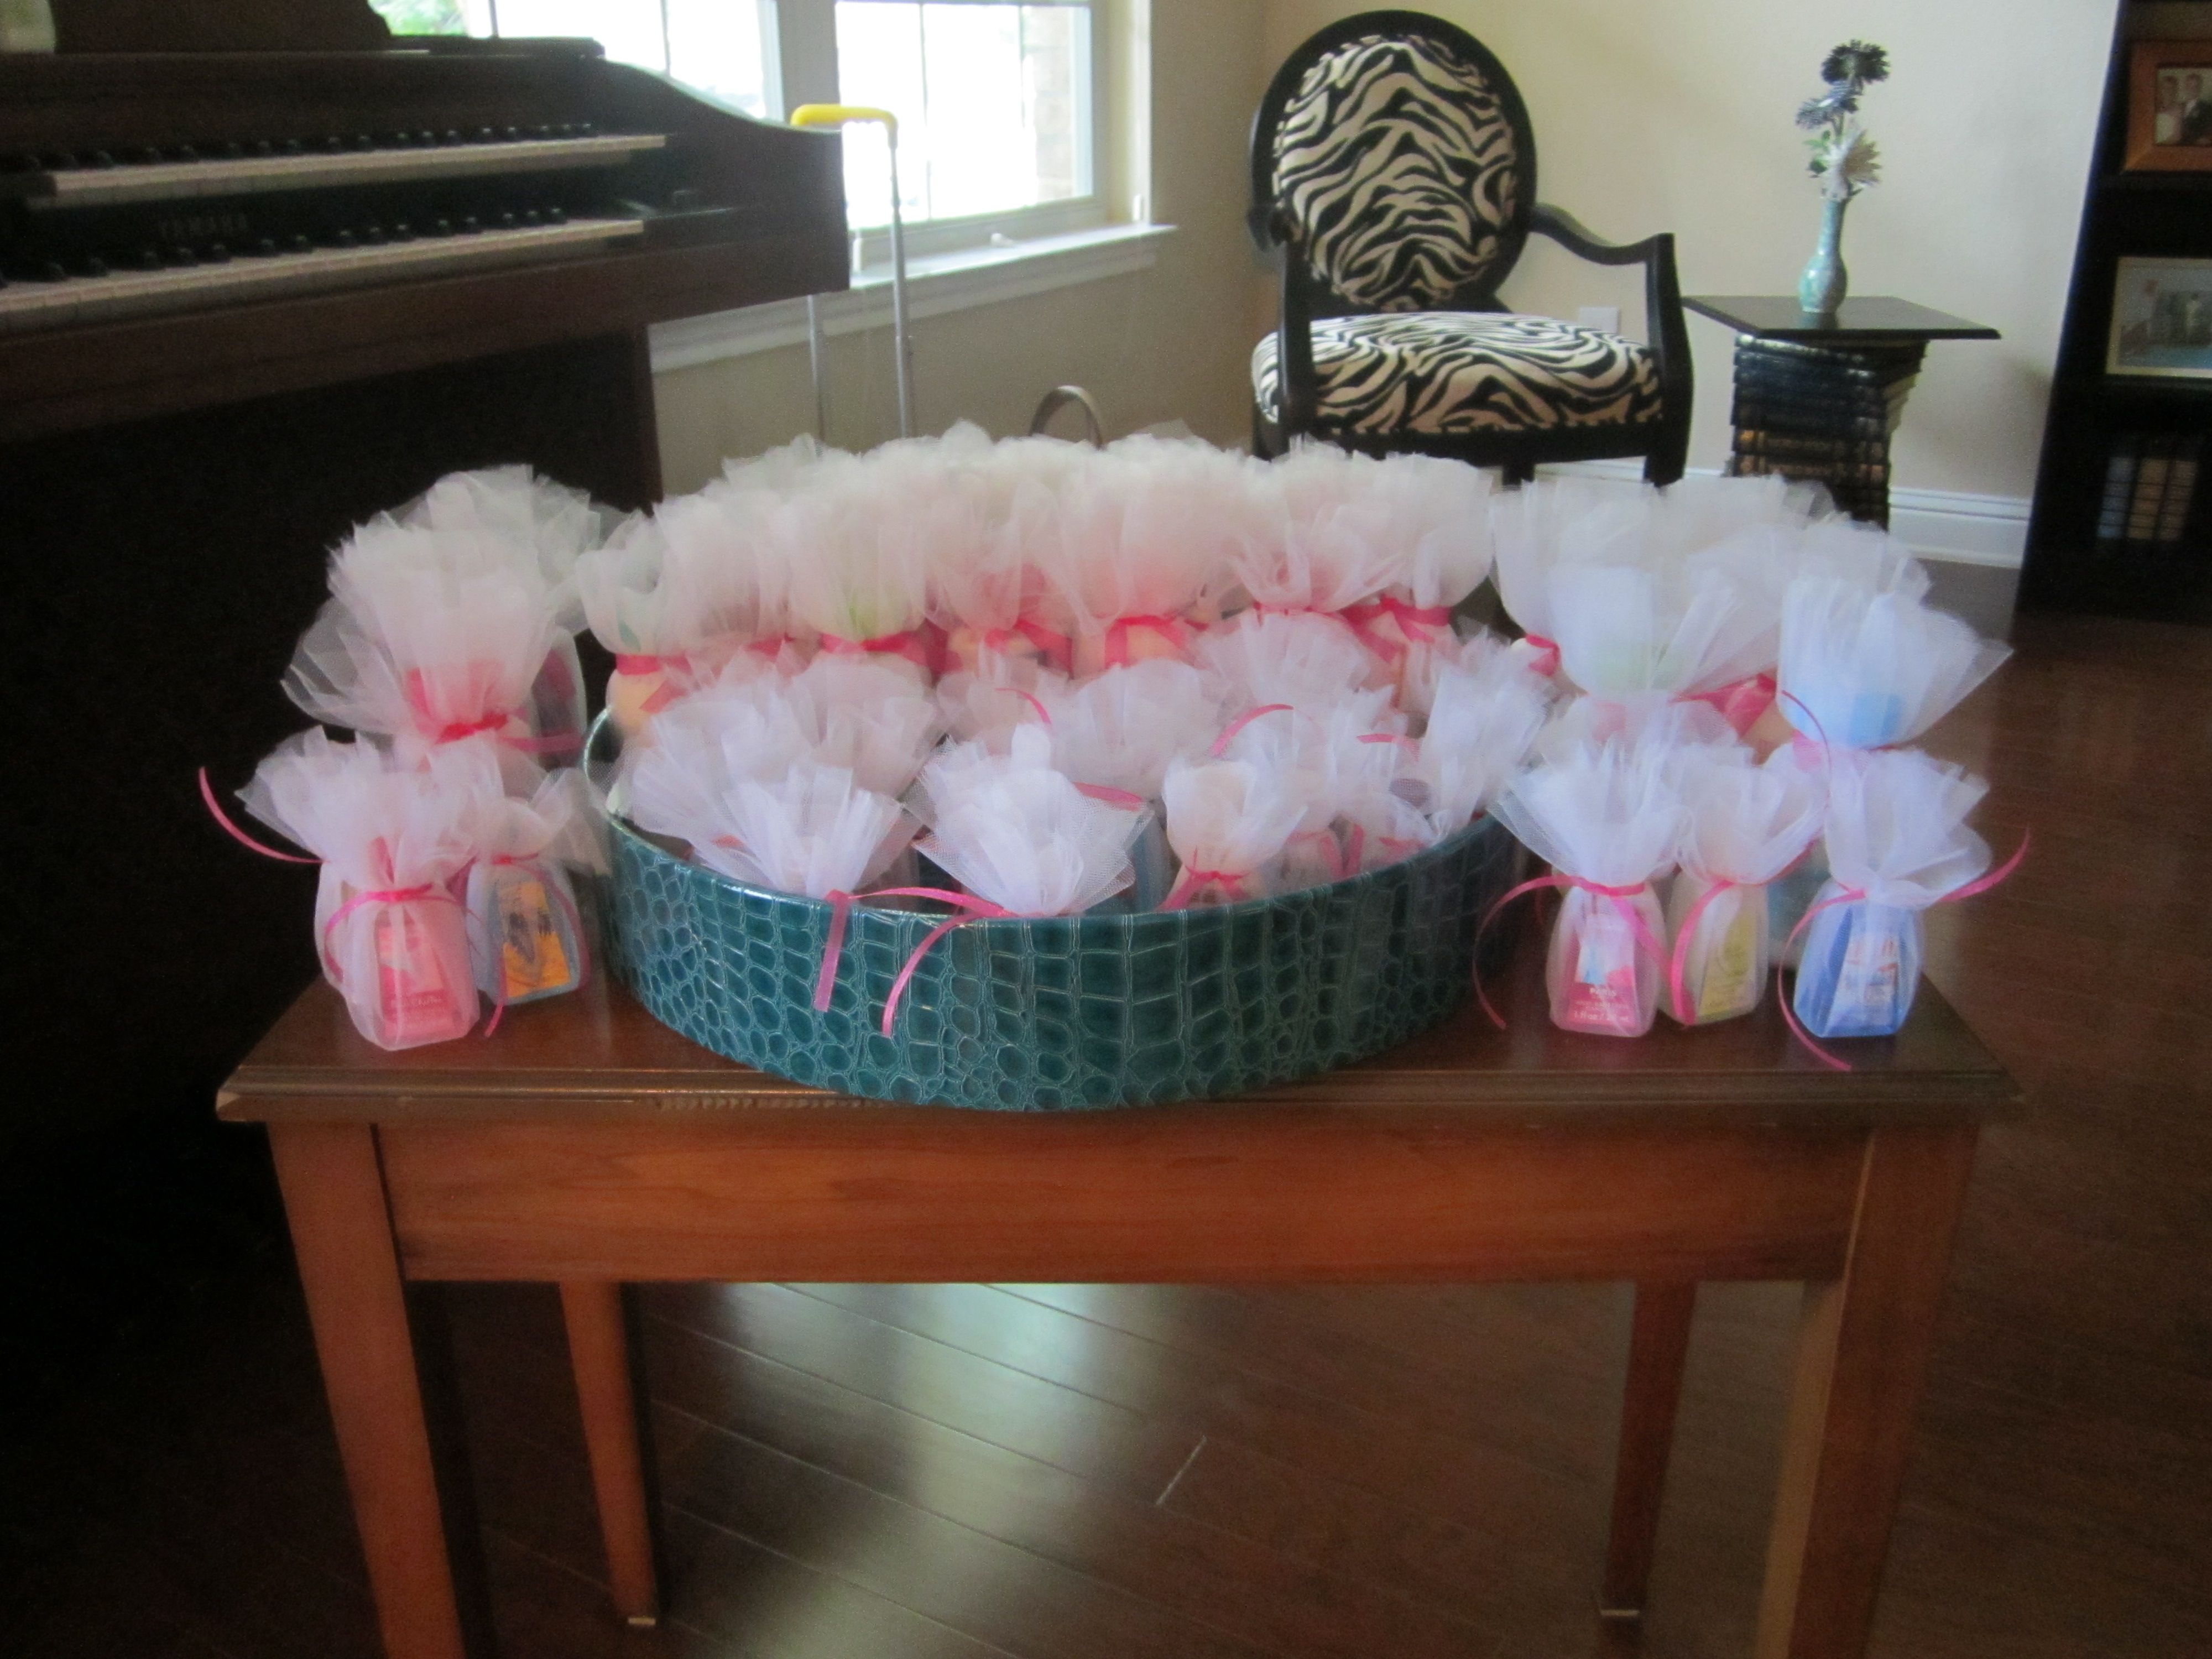 beach wedding shower favor ideas%0A Shower favors  Bath  u     Body Works  Mini lotions  Mini hand sanitizer  Tulle